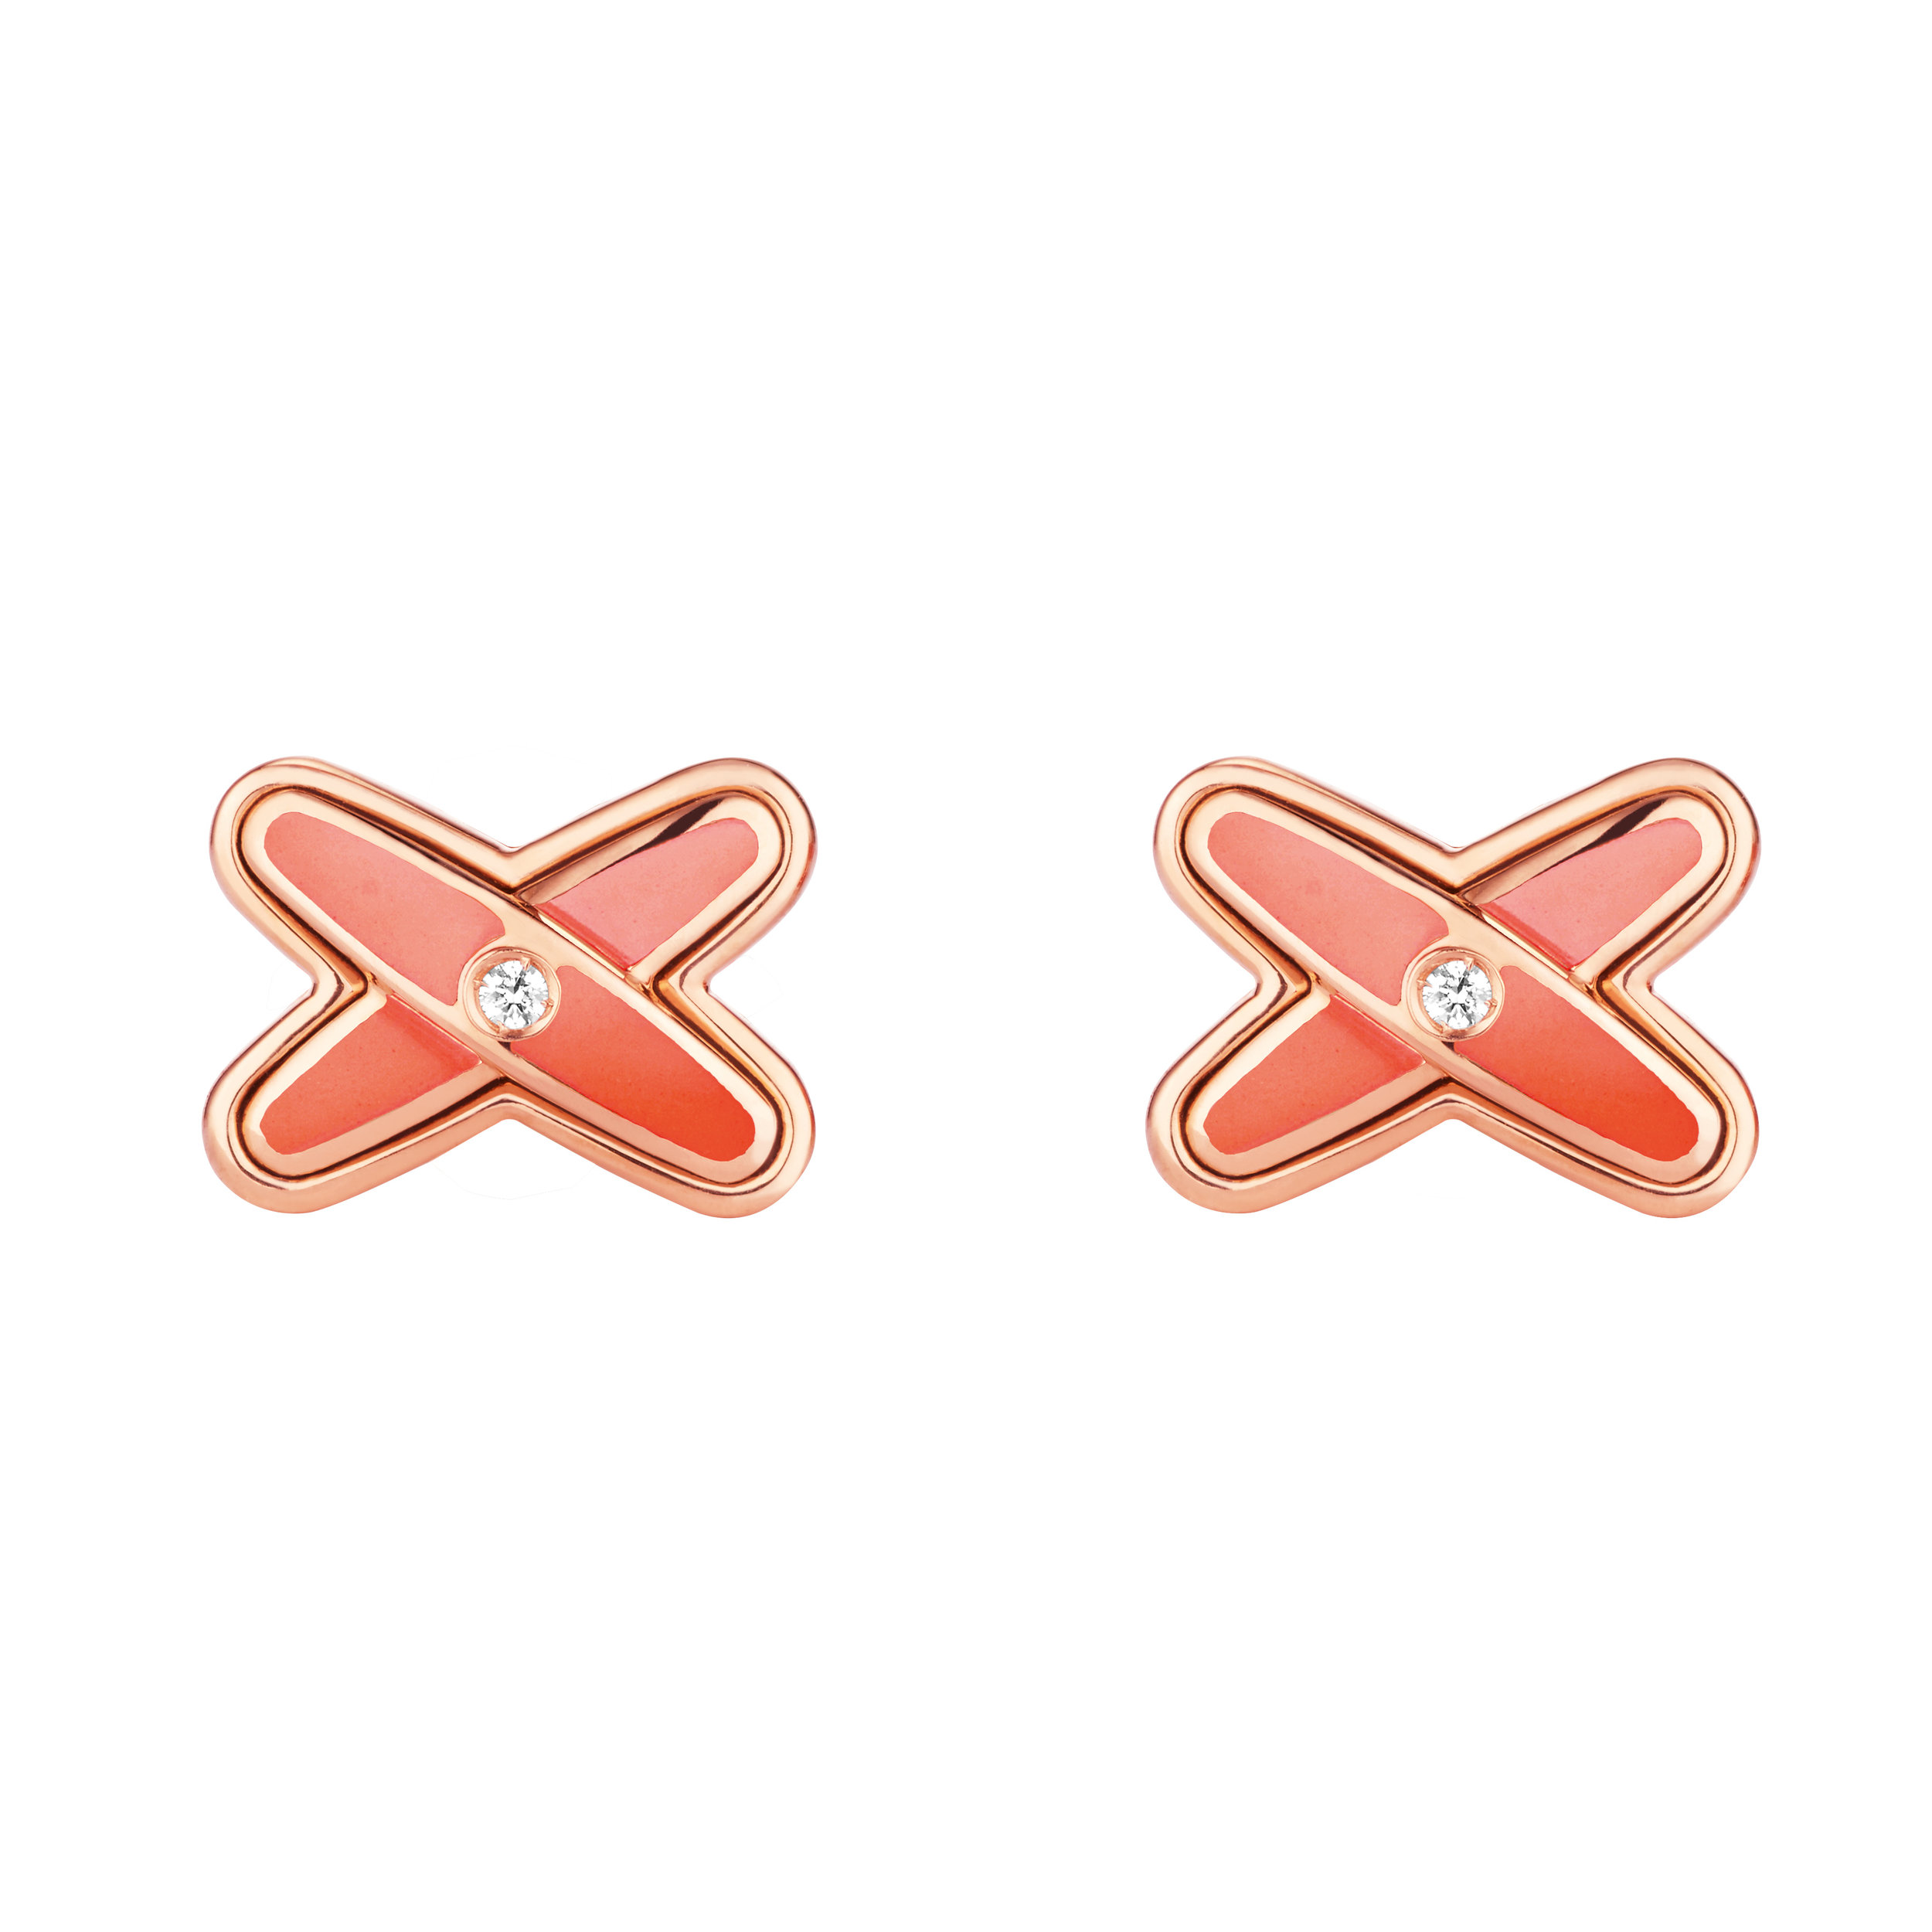 083463 Jeux de Liens Studs Earrings PG Vibrant Orange Lacquer 2.jpg